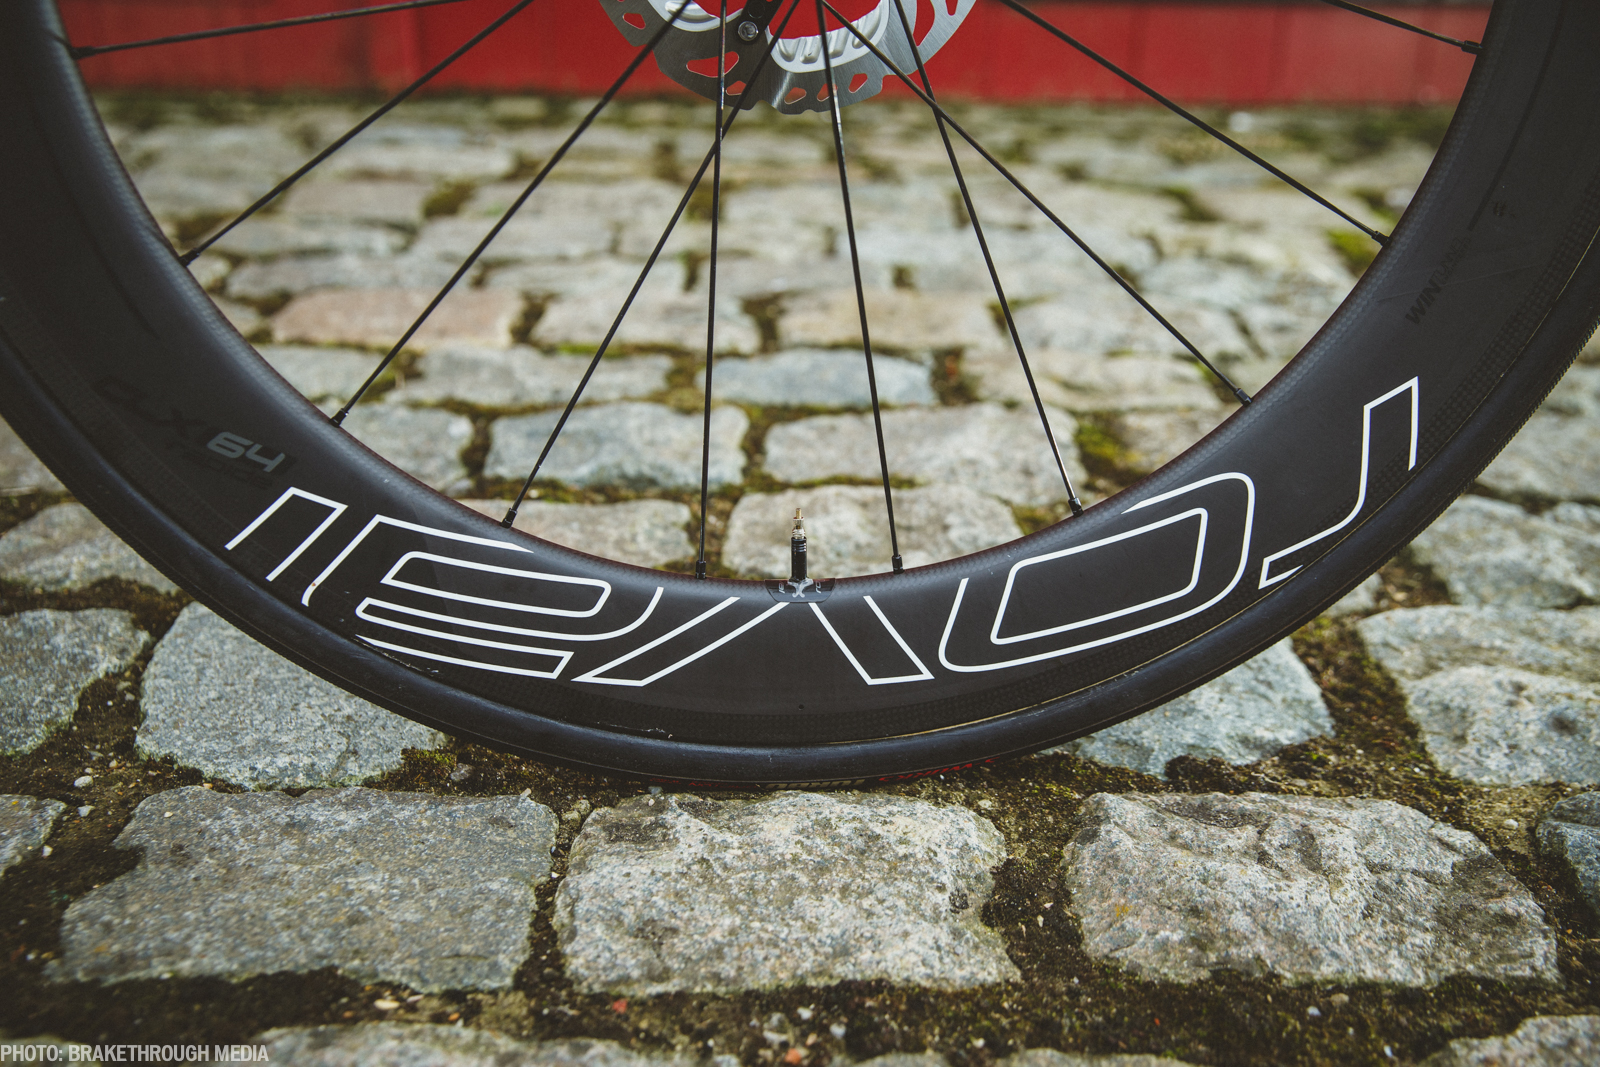 Specialized Venge ViAS Disc Tom Boonen limited edition